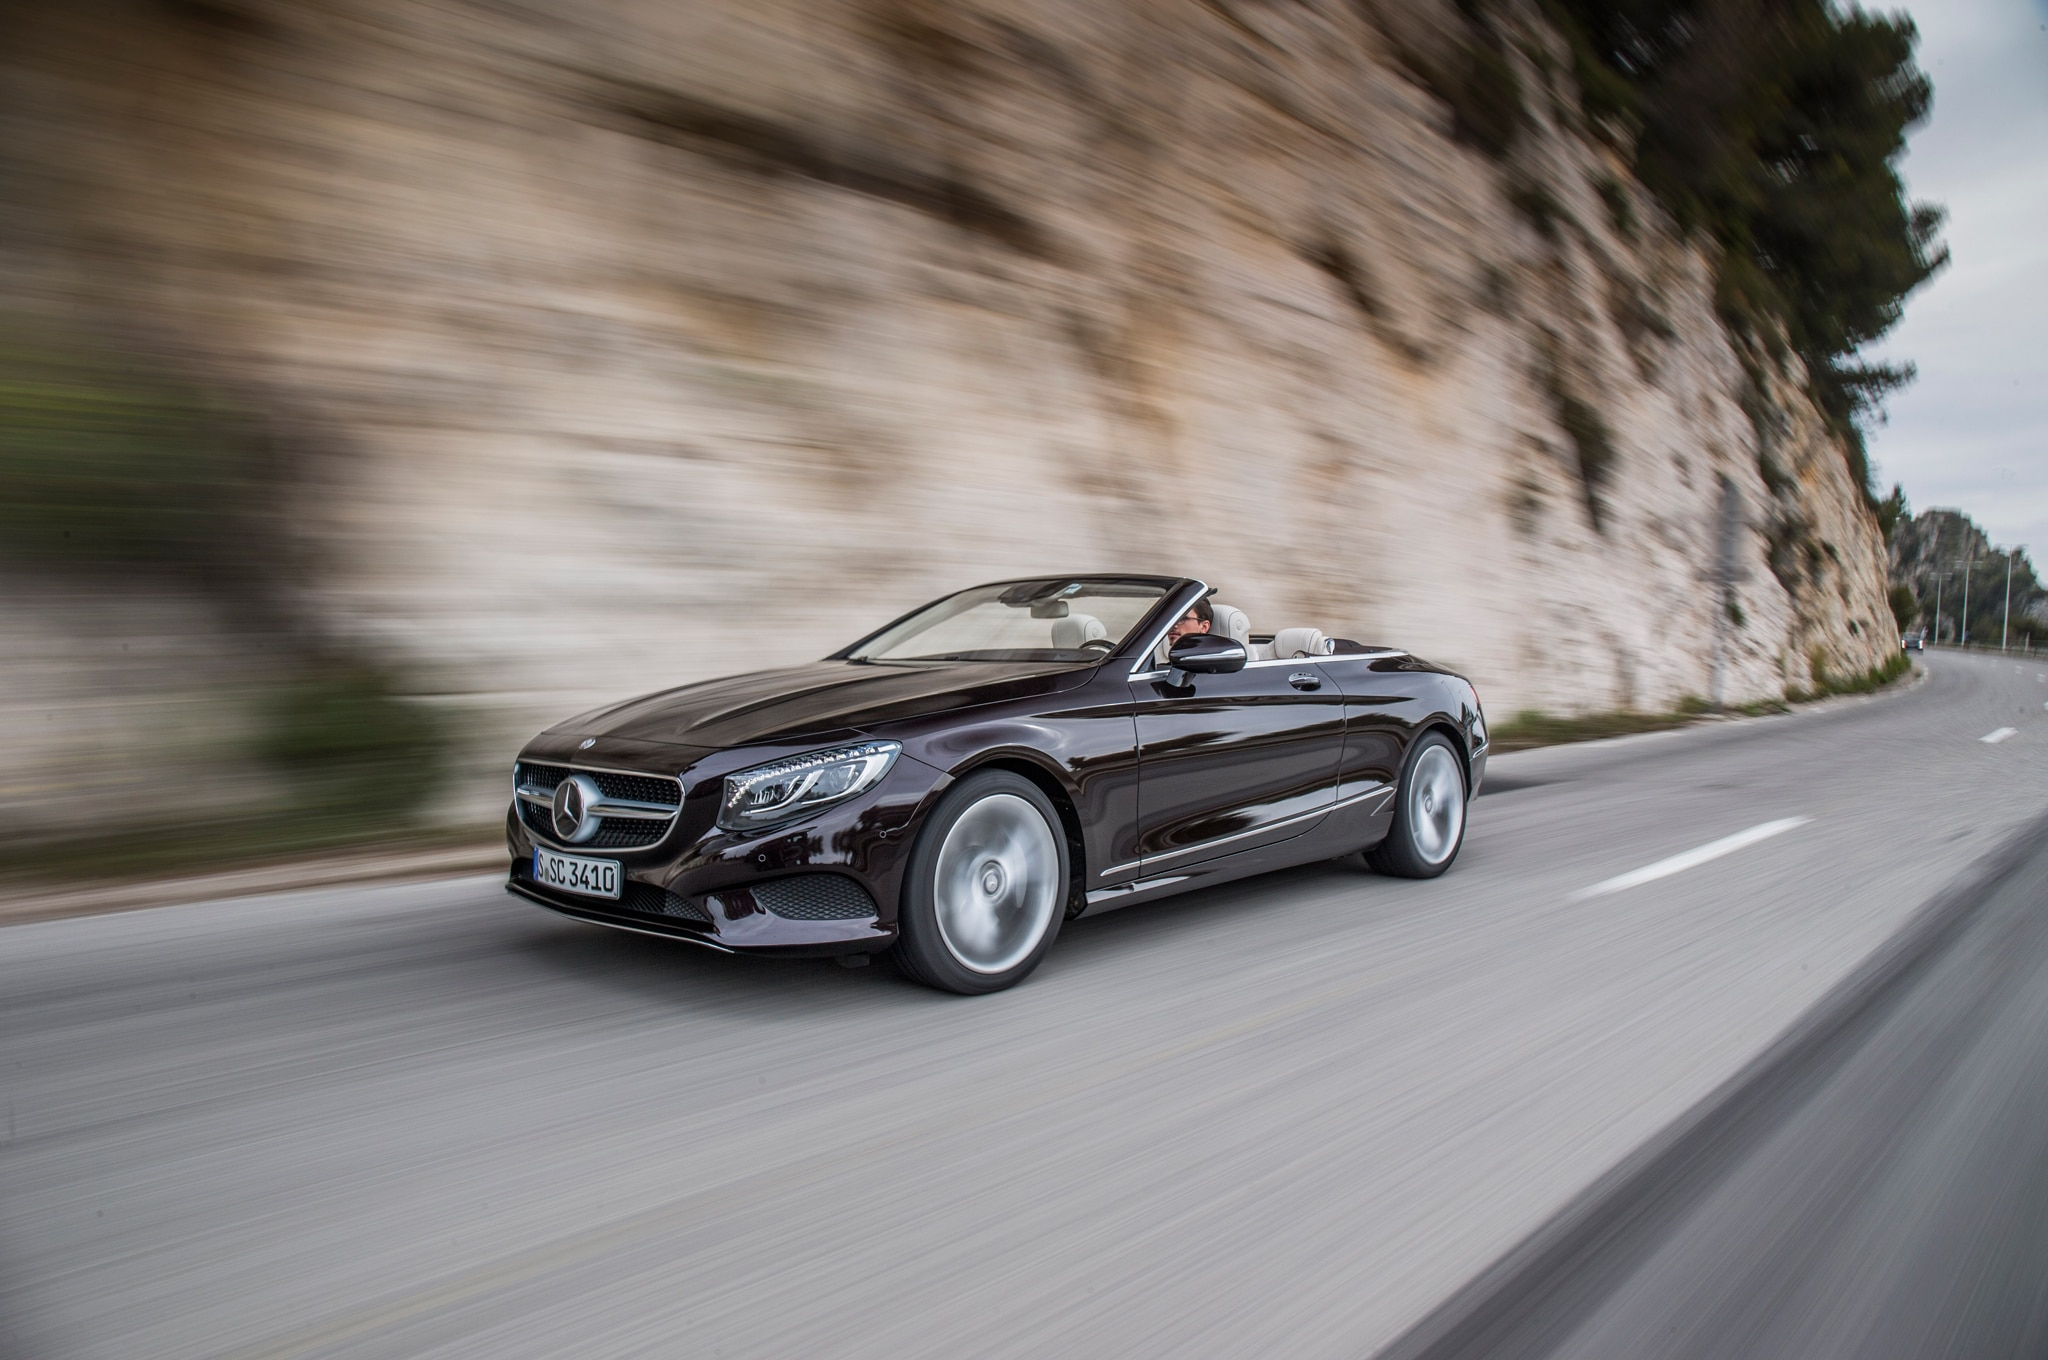 2017 mercedes benz s500 cabriolet review. Black Bedroom Furniture Sets. Home Design Ideas